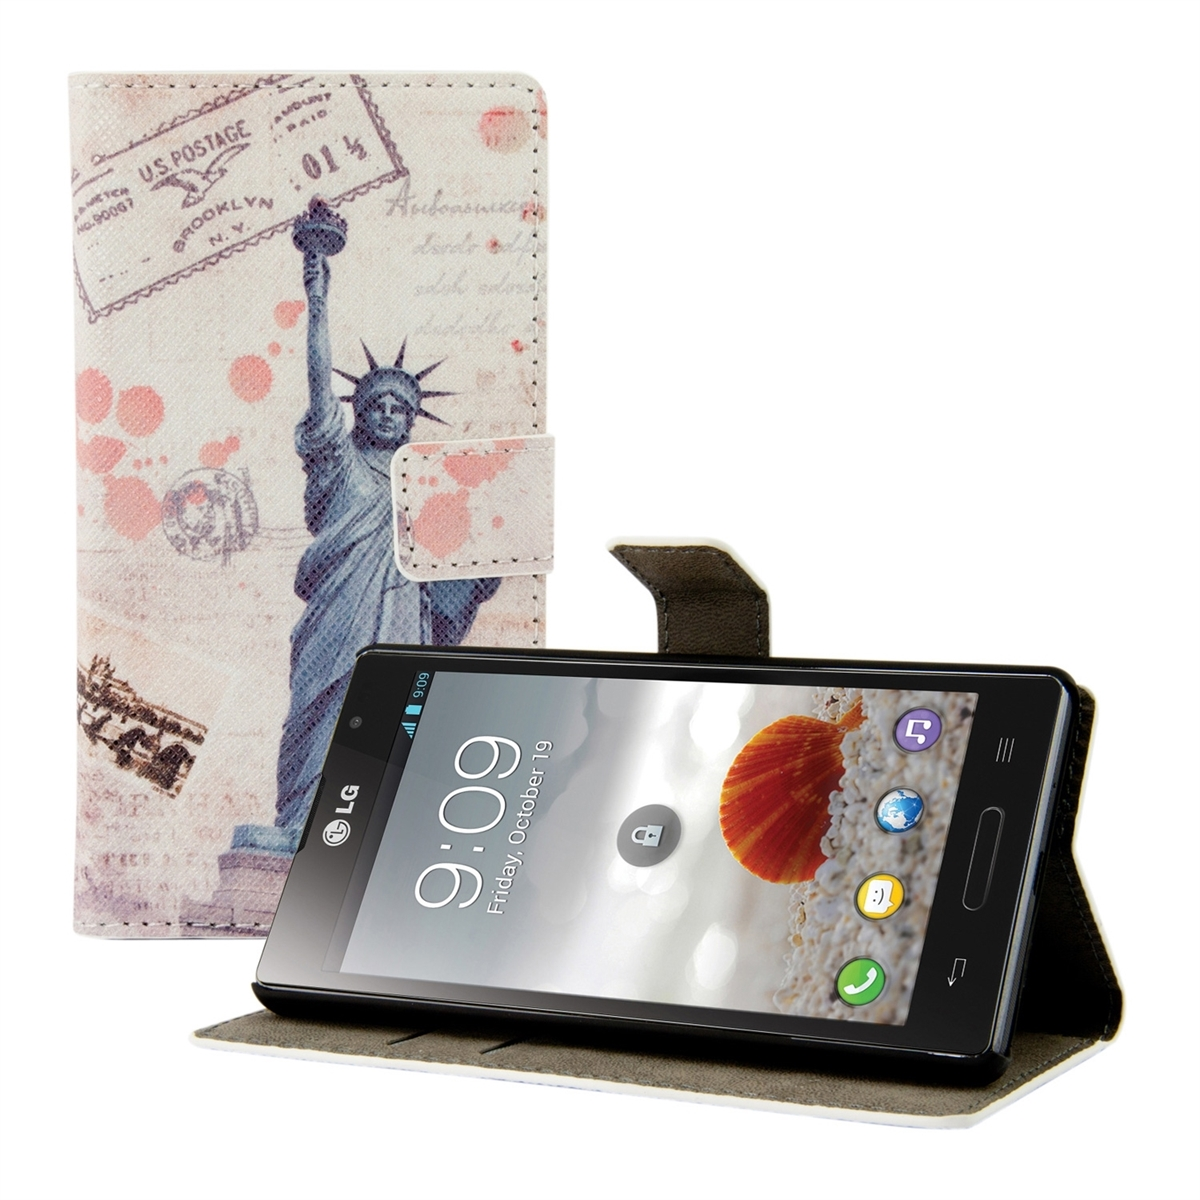 kwmobile WALLET LEATHER CASE DESIGN FOR LG OPTIMUS L9 P760 DESIRED COLOUR PURSE